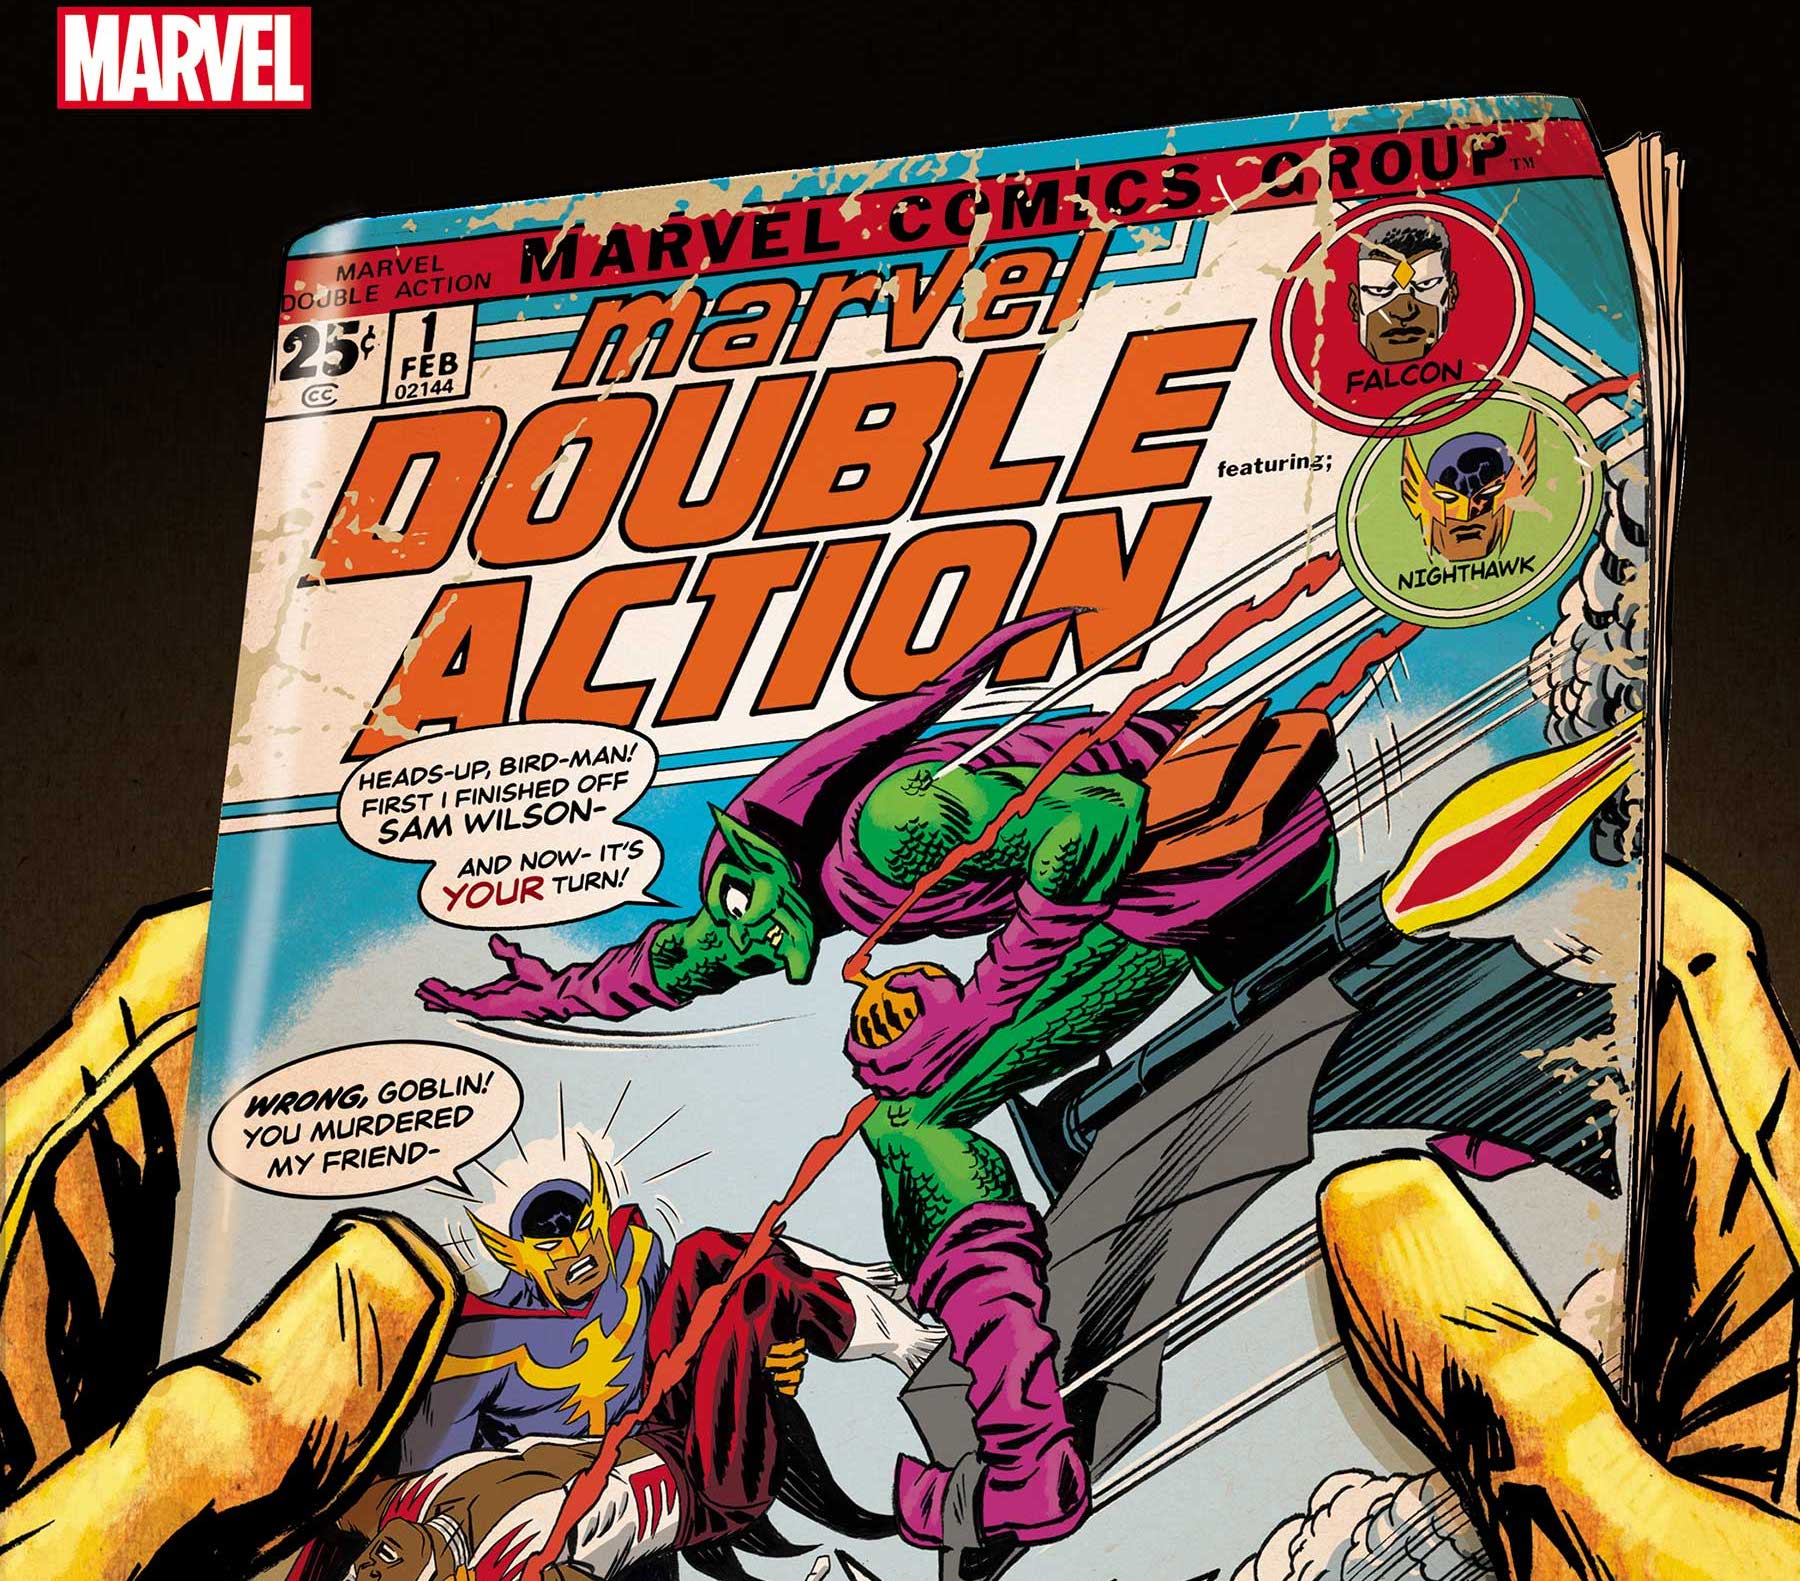 EXCLUSIVE Marvel Preview: Heroes Reborn: Marvel Double Action #1